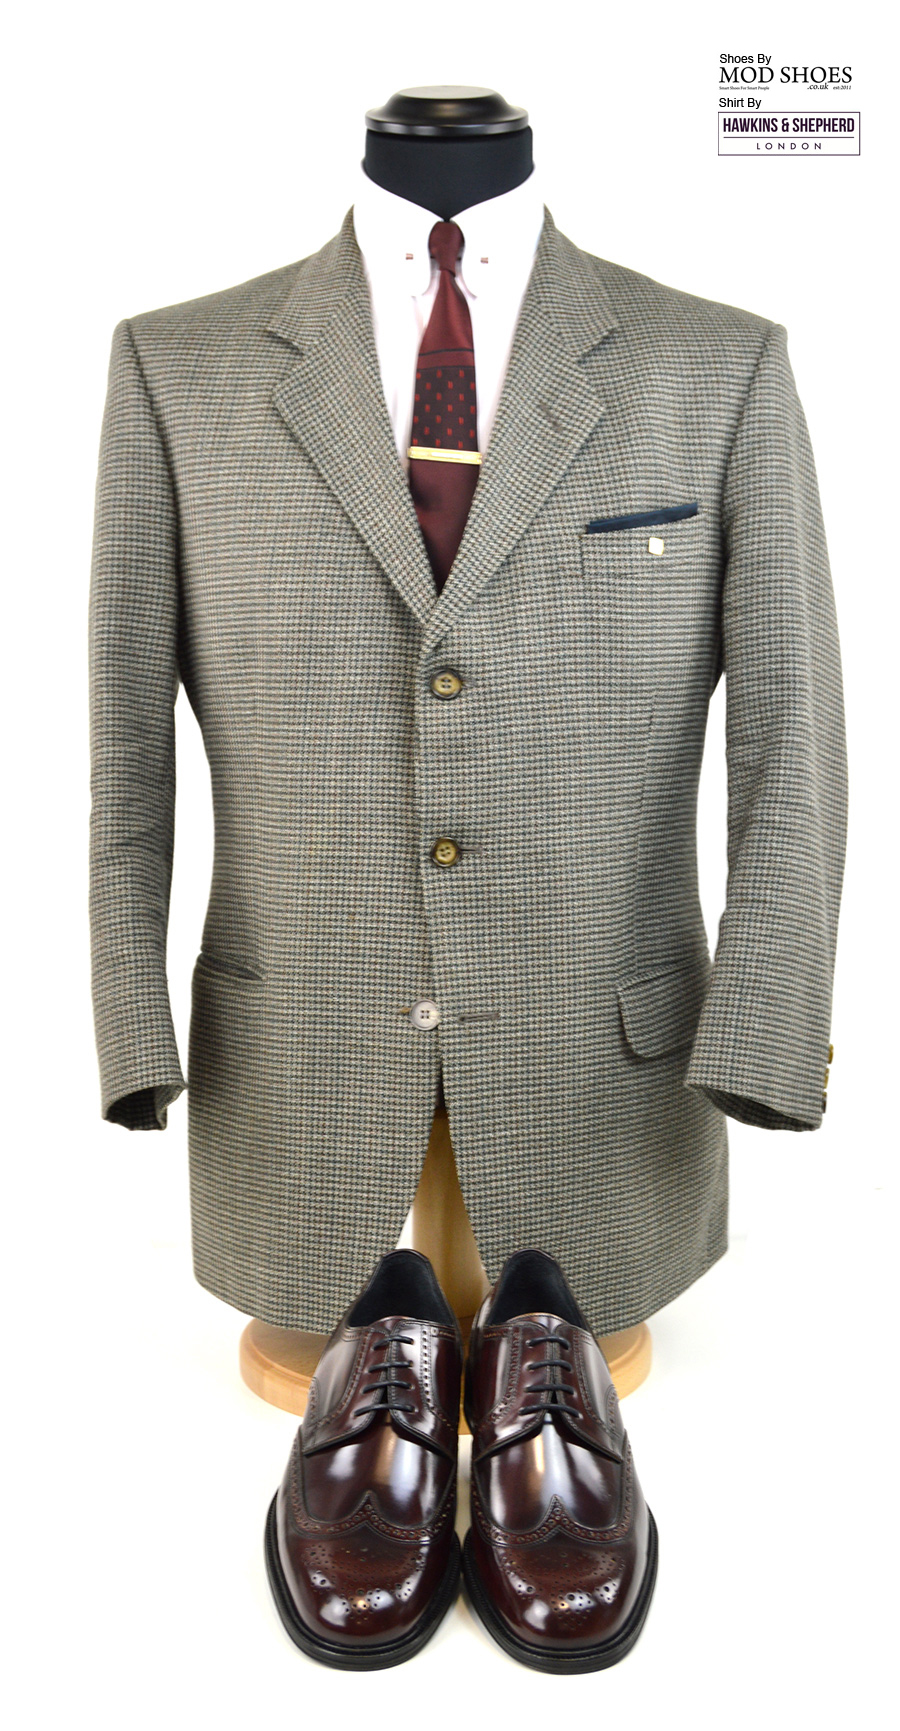 modshoes-brogues-with-mod-jacket-and-hawkins-shirt